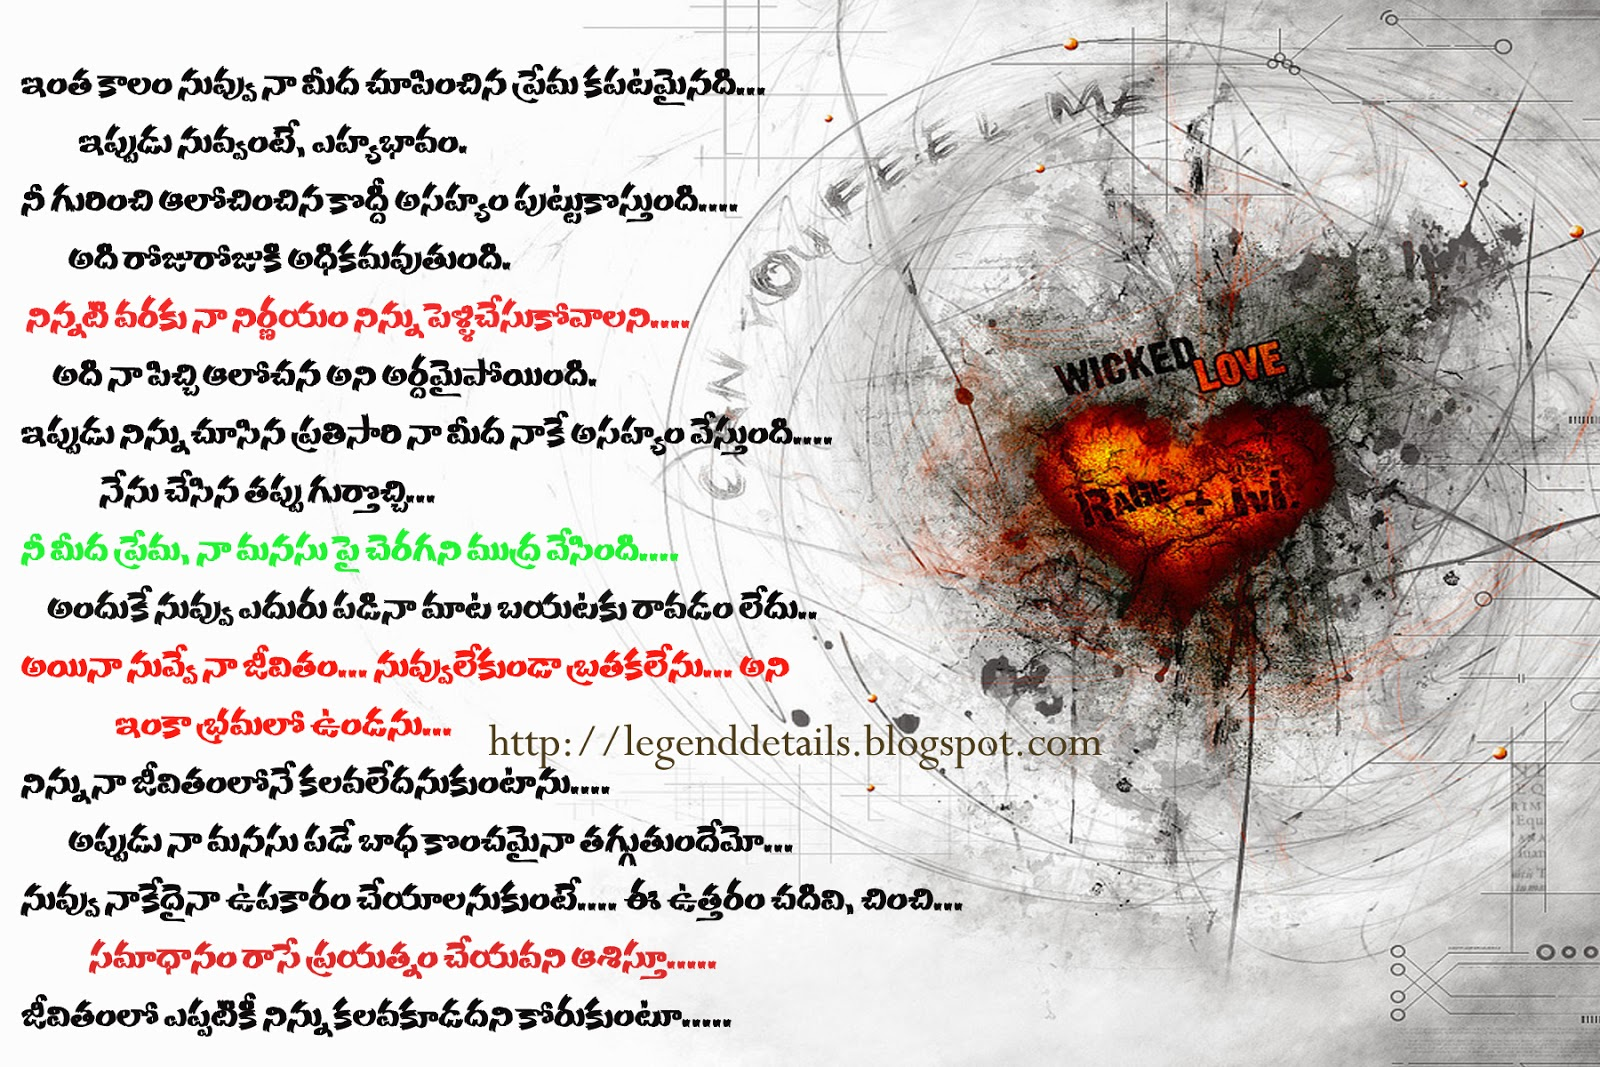 Love Letter Quotes For Him I Hate You Love Letter In Telugu  Legendary Quotes